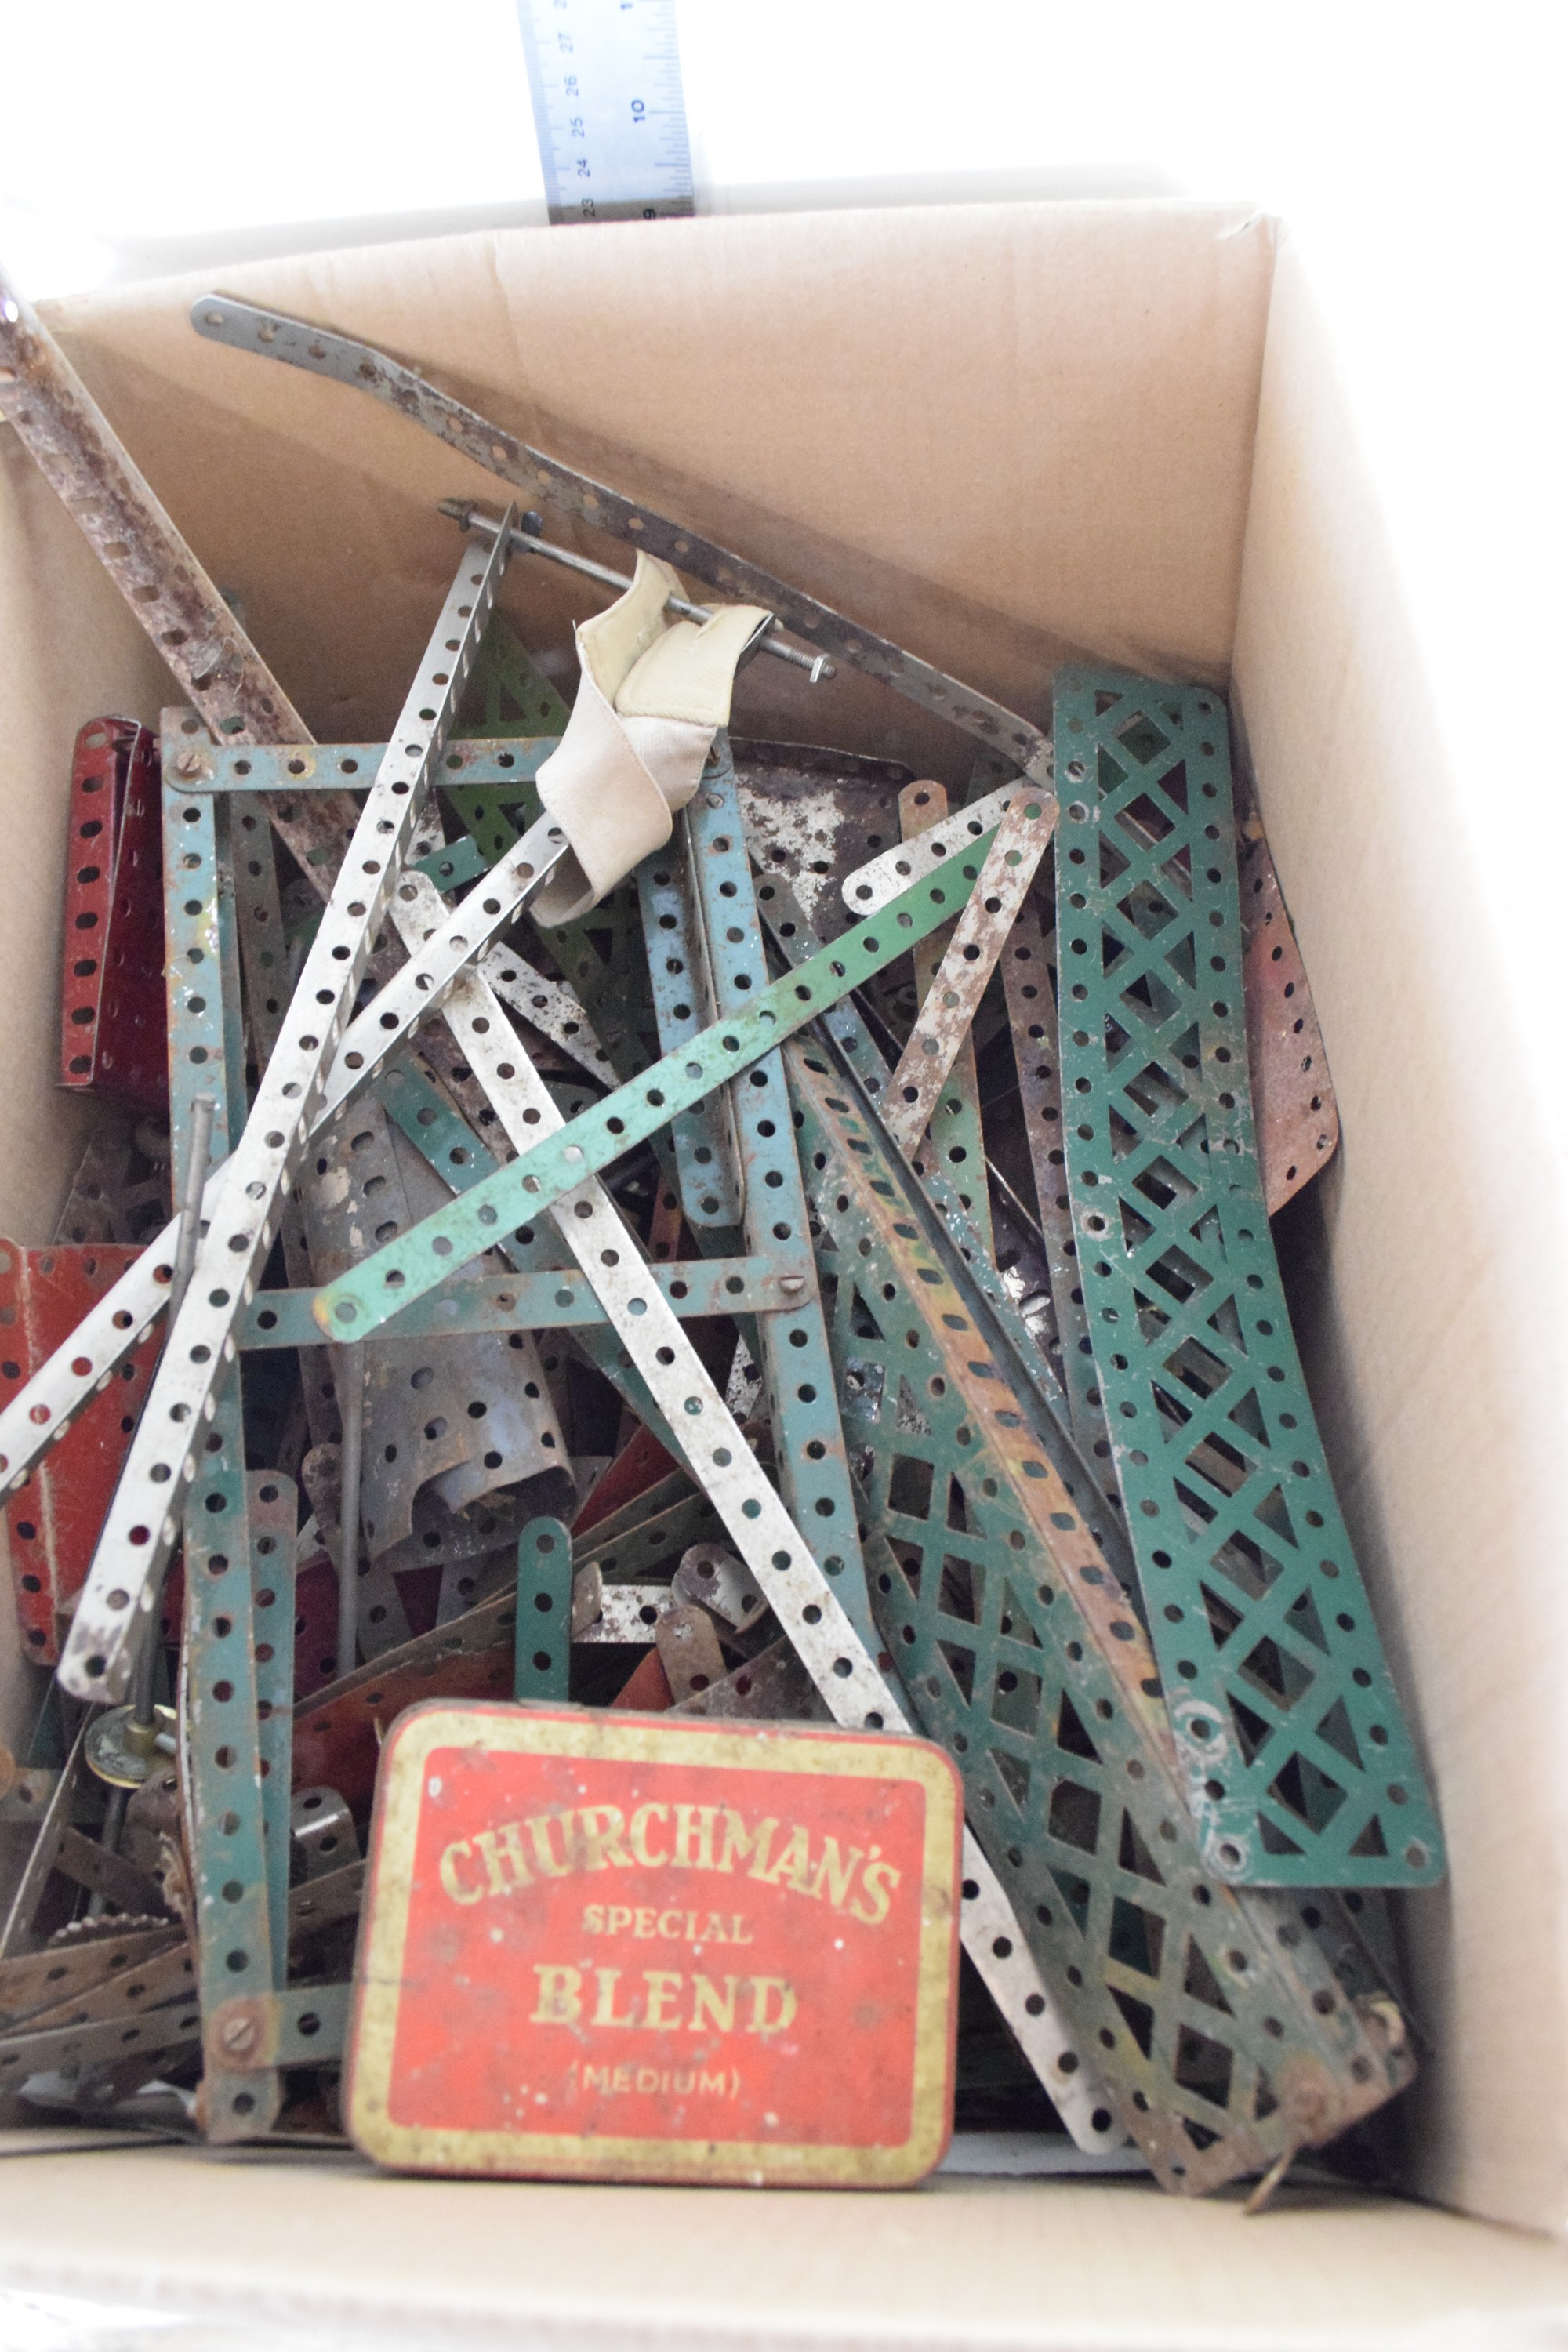 Box containing vintage Meccano and instruction manual - Image 2 of 2